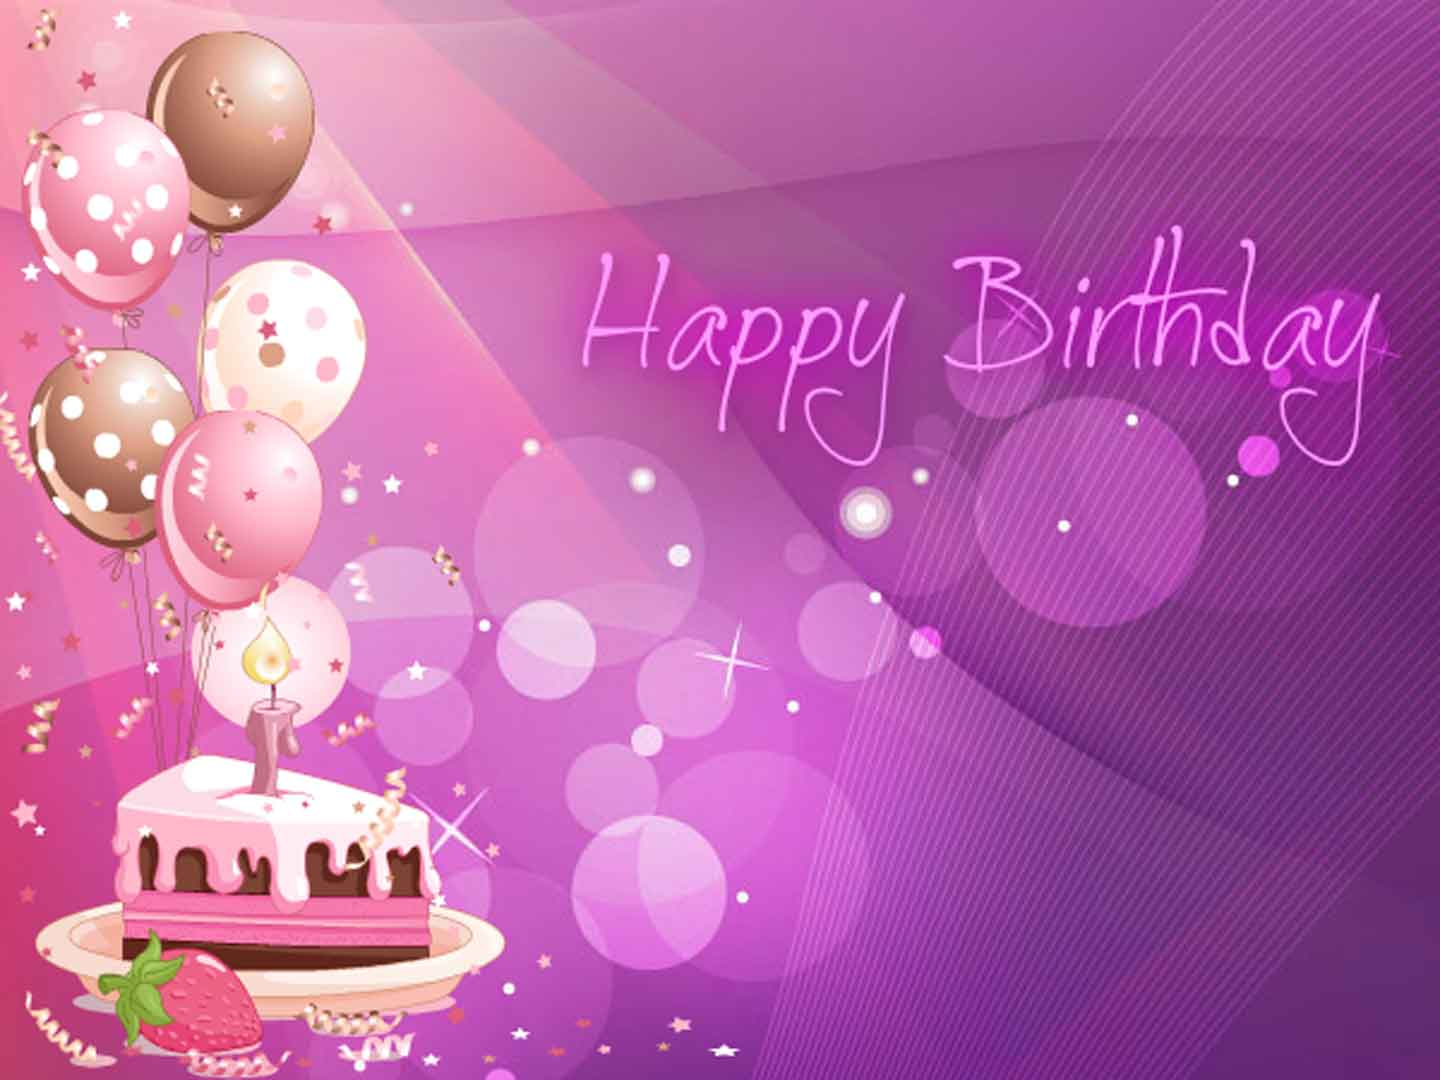 Happy Birthday Wallpapers Image 1440x1080